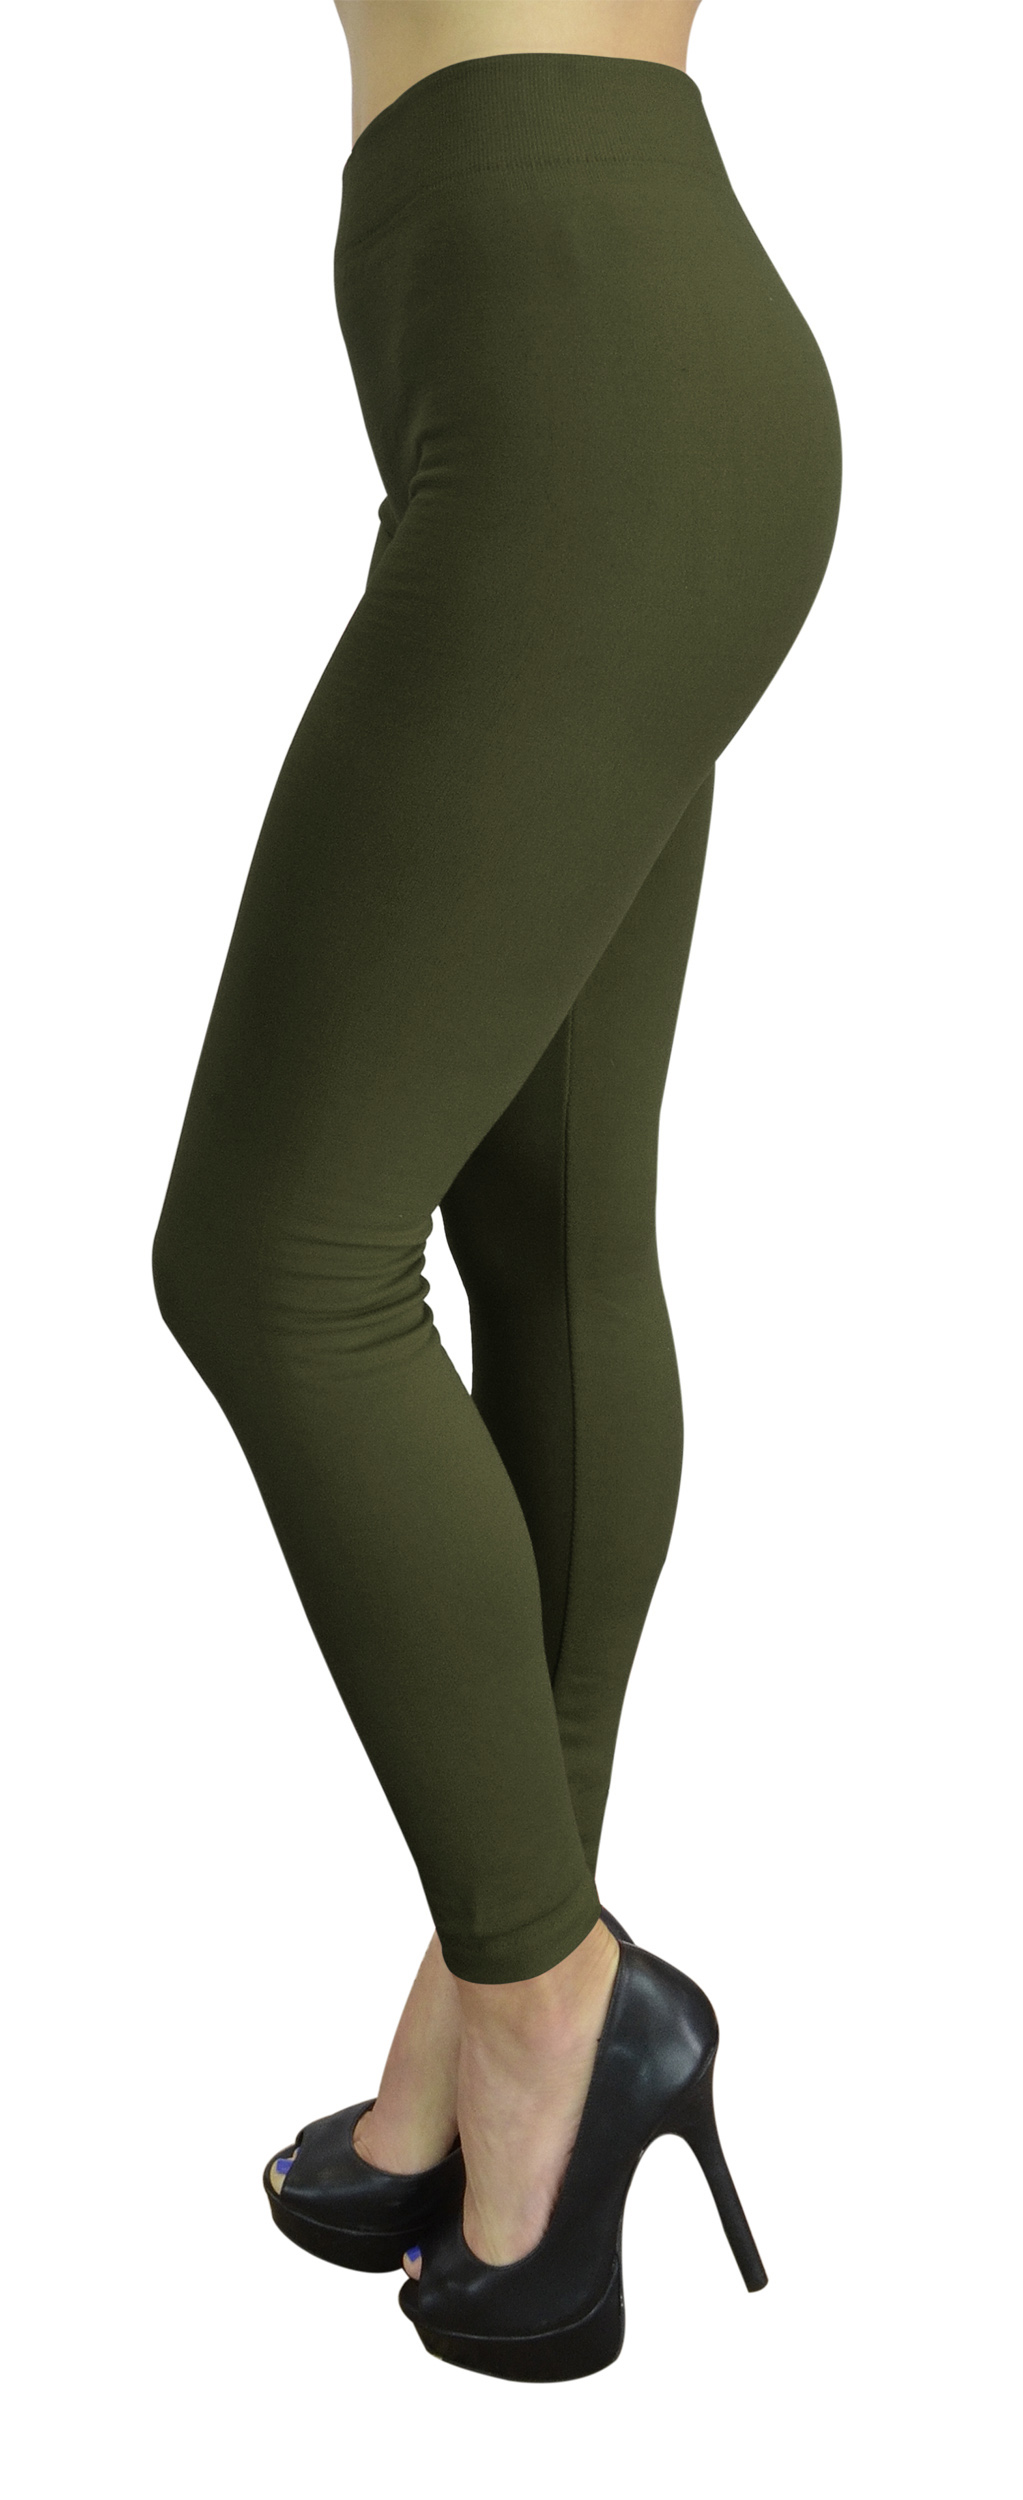 Belle Donne Womens Leggings Workout Yoga Solid Color High Waist by Army Green